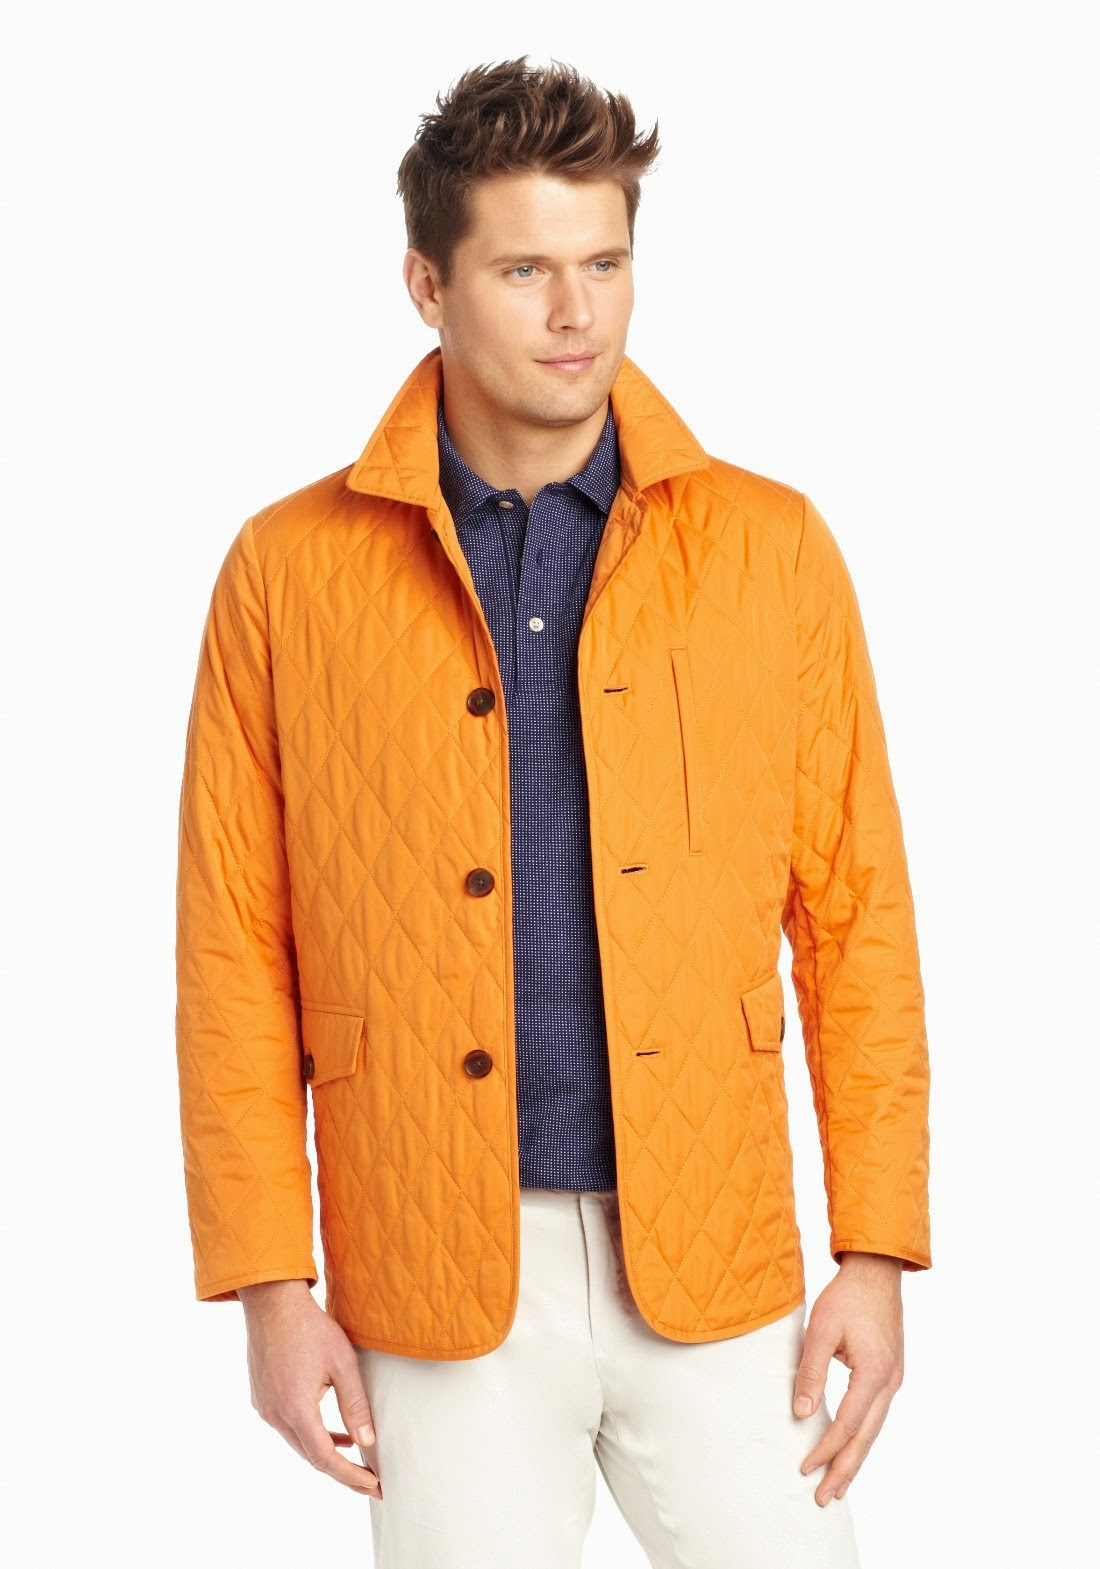 J. McLaughlin Chatham Quilted Jacket Men's